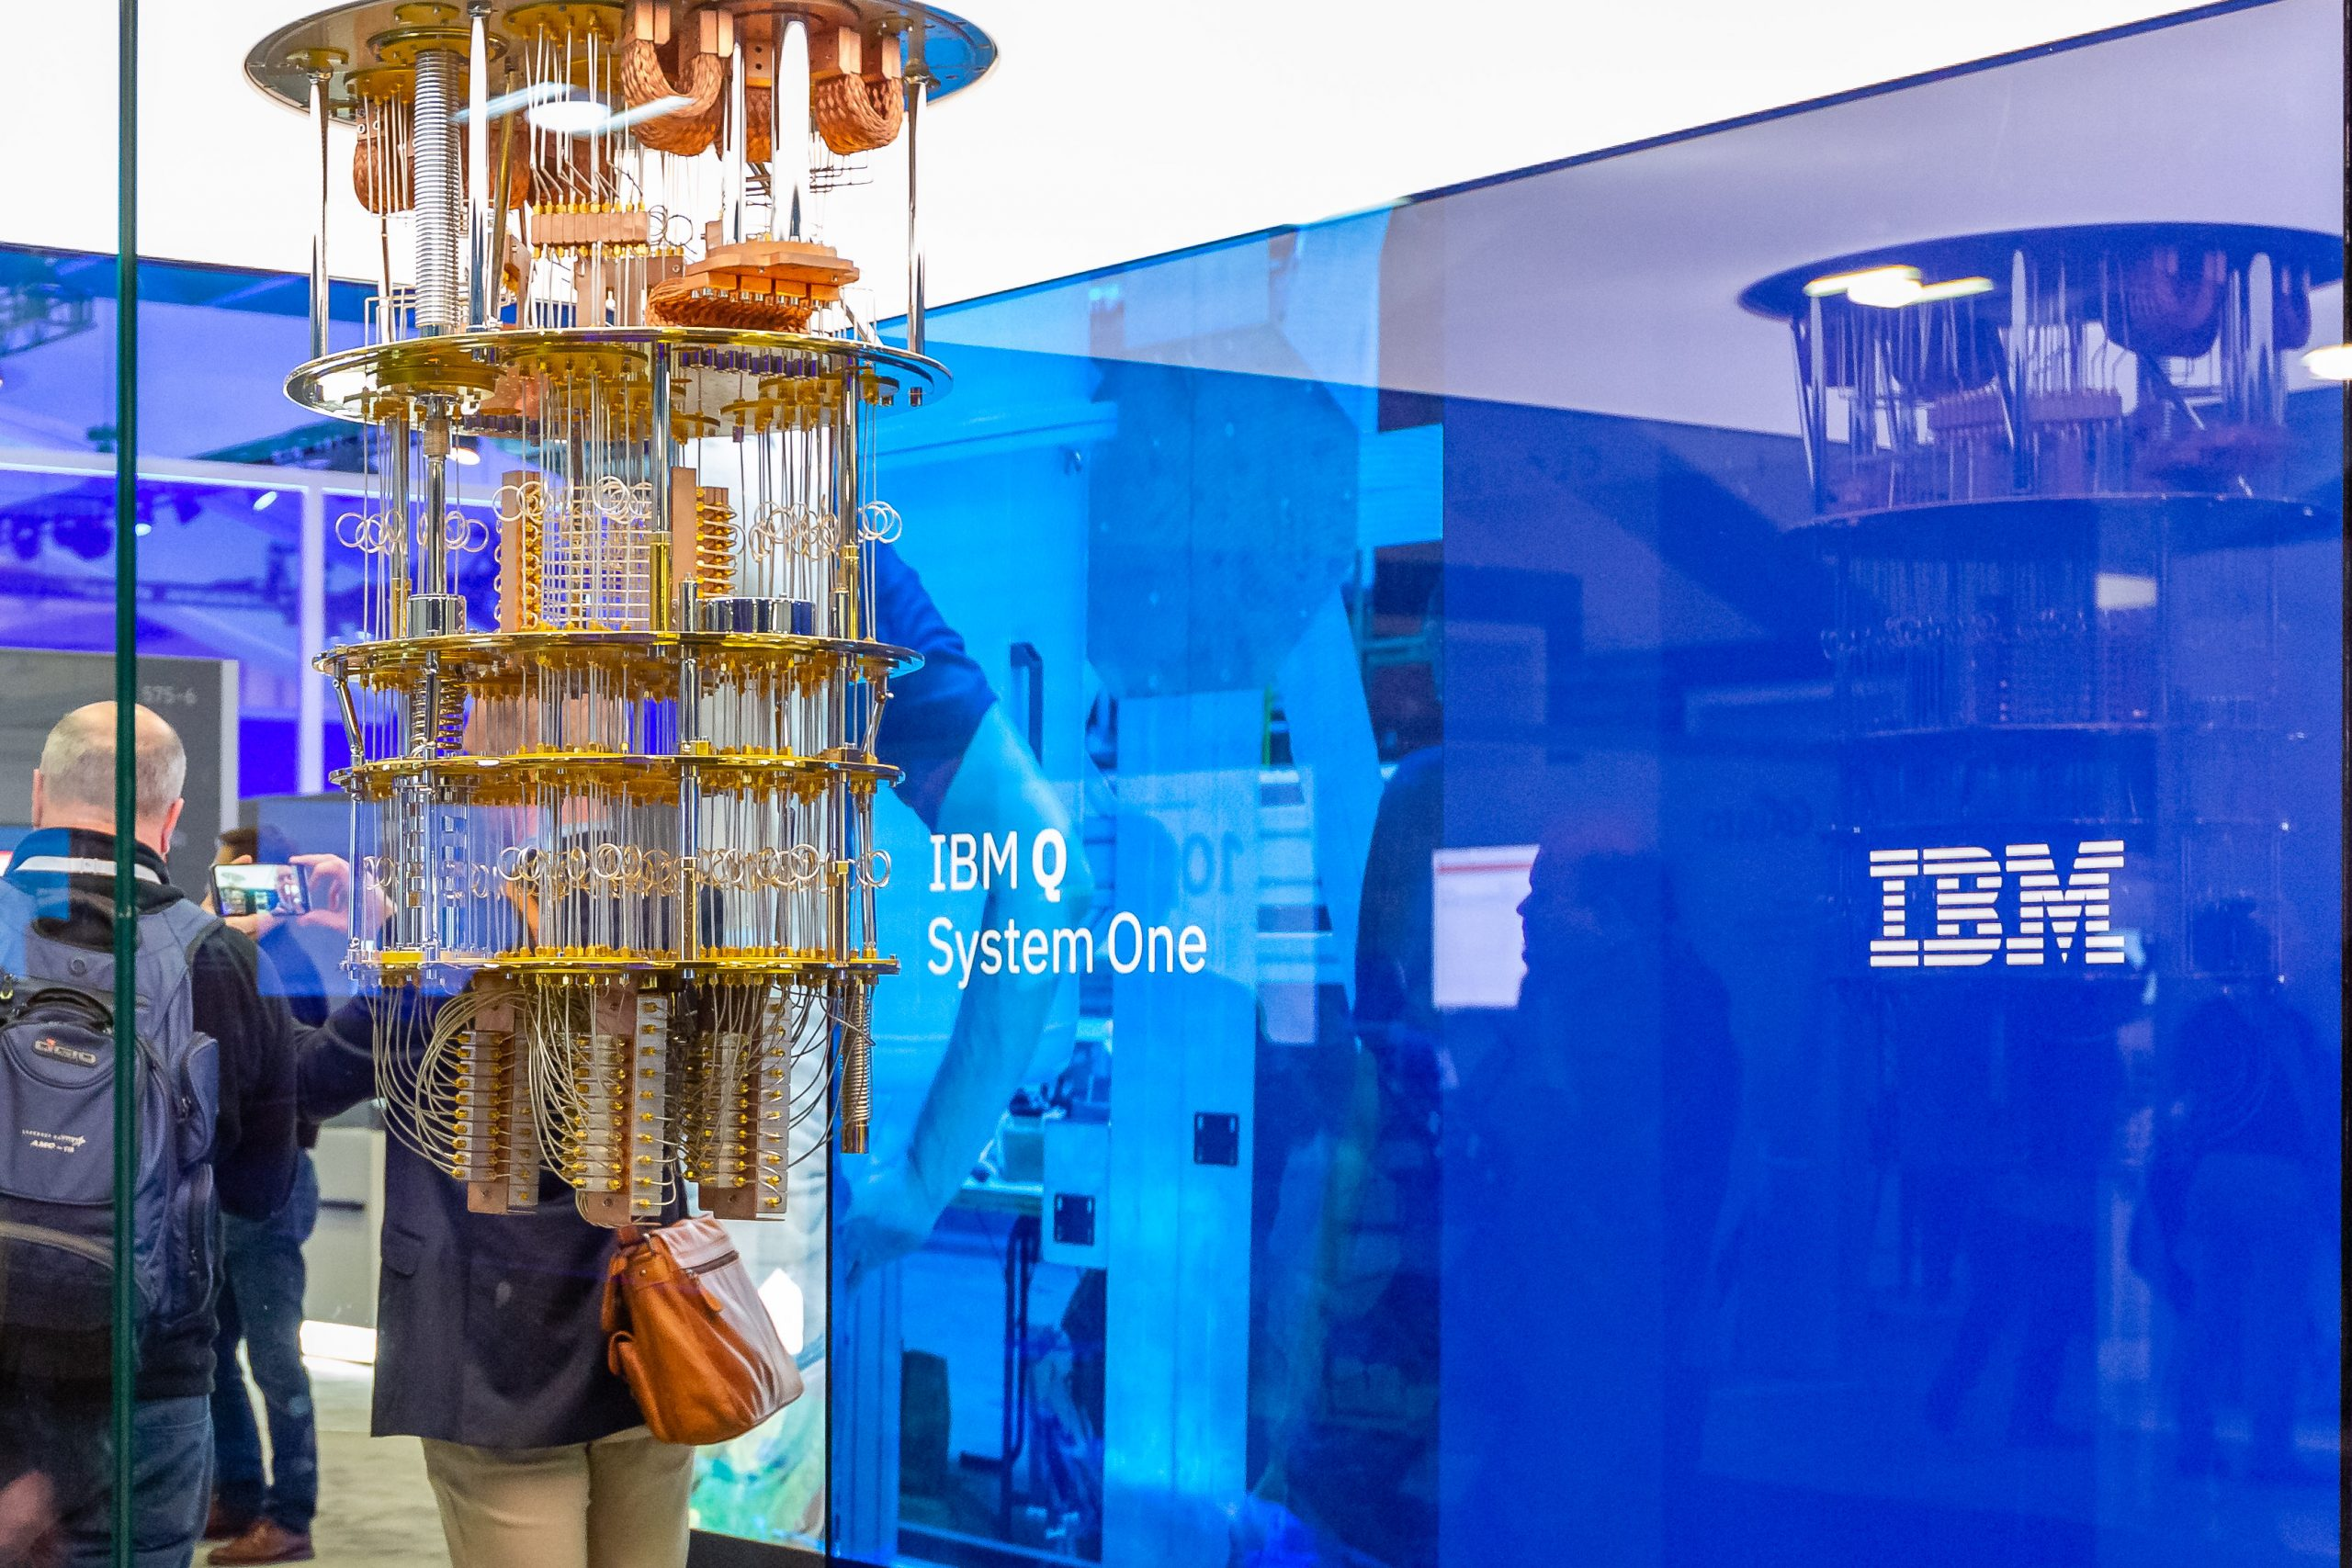 IBM Delivers Its Highest Quantum Volume to Date